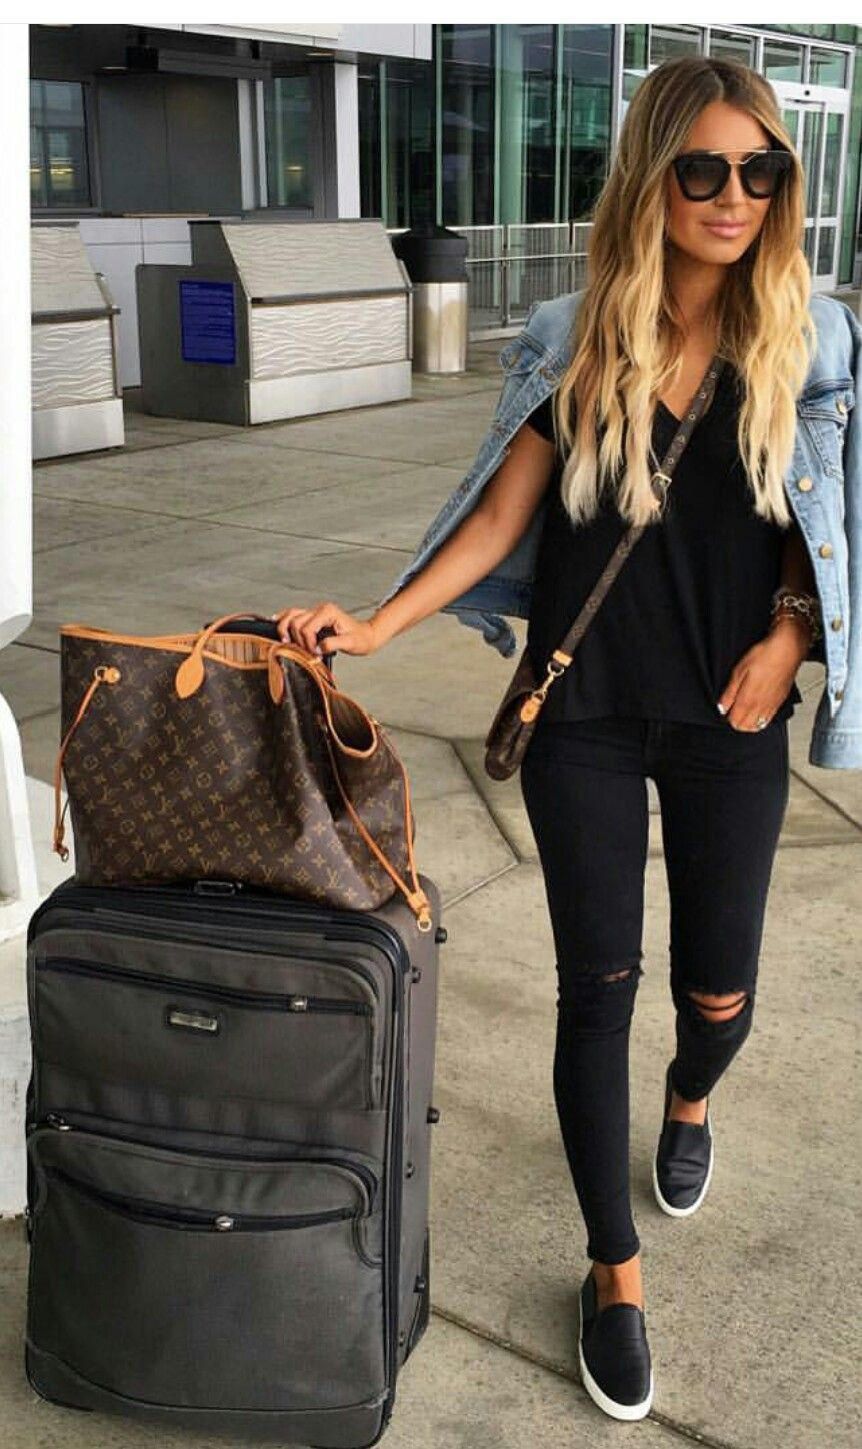 Classy outfit comfy travel outfits, fashion accessory, street fashion, hand luggage, las vegas